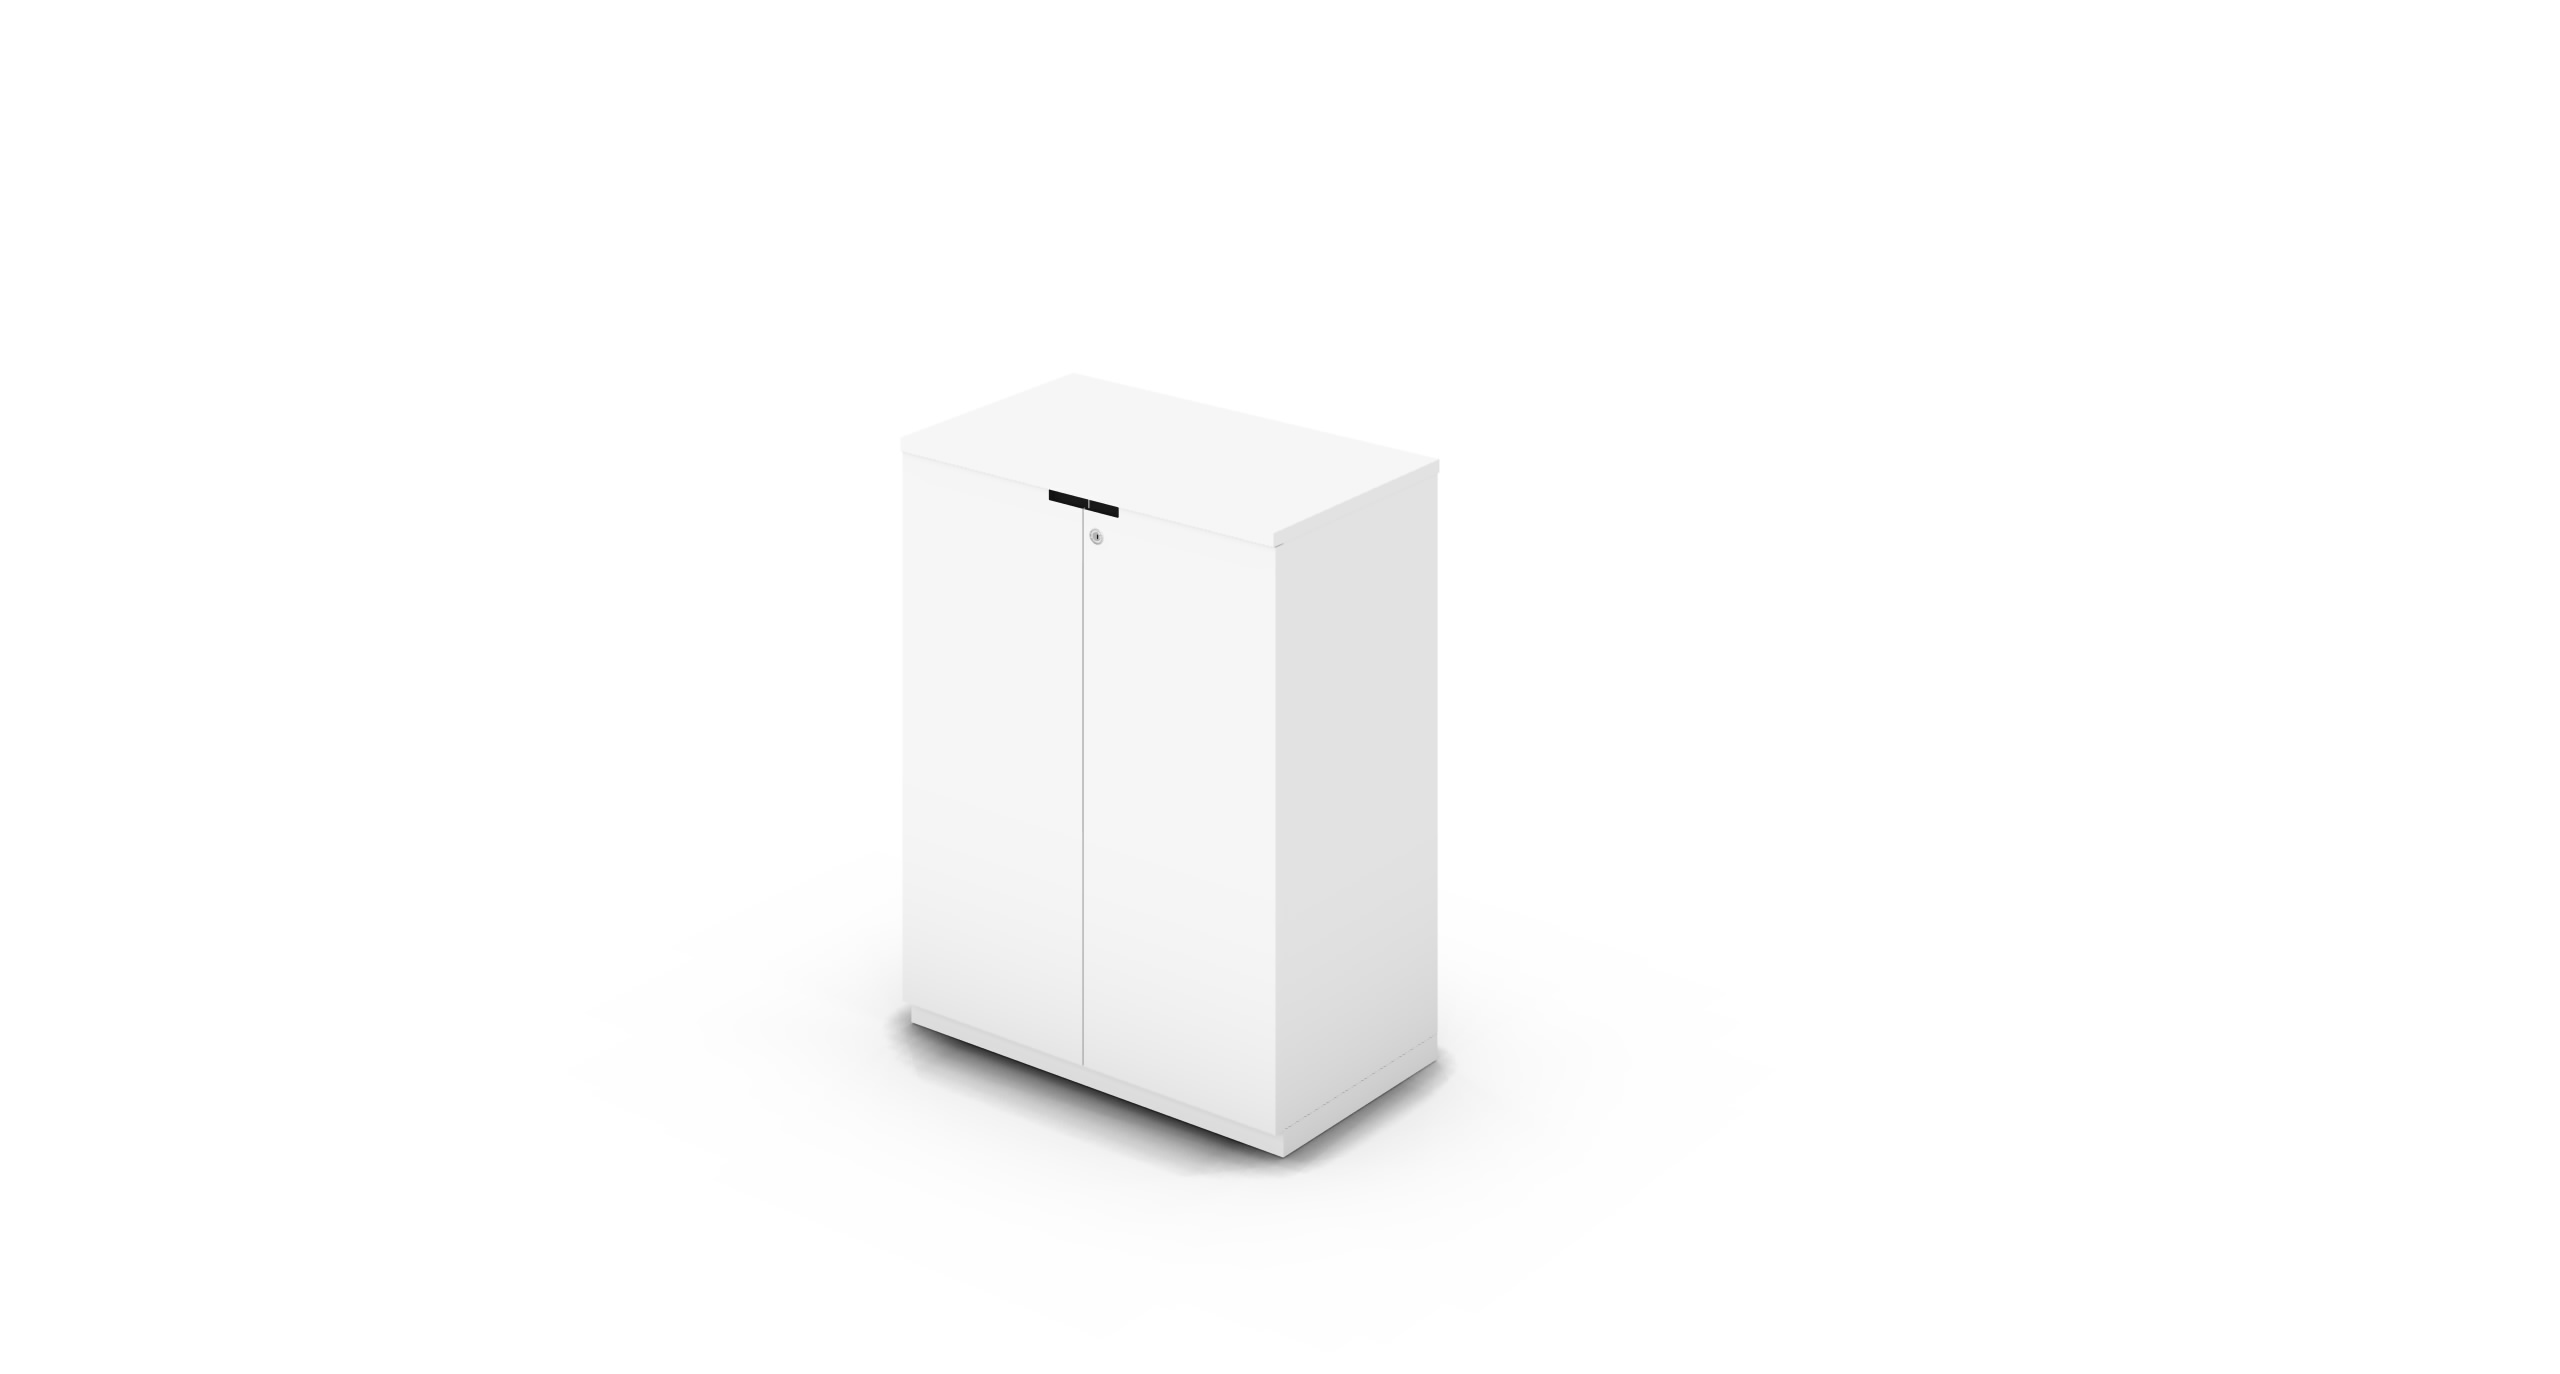 Cabinet_800x450x1125_HD_White_CutOut_WithCylinder